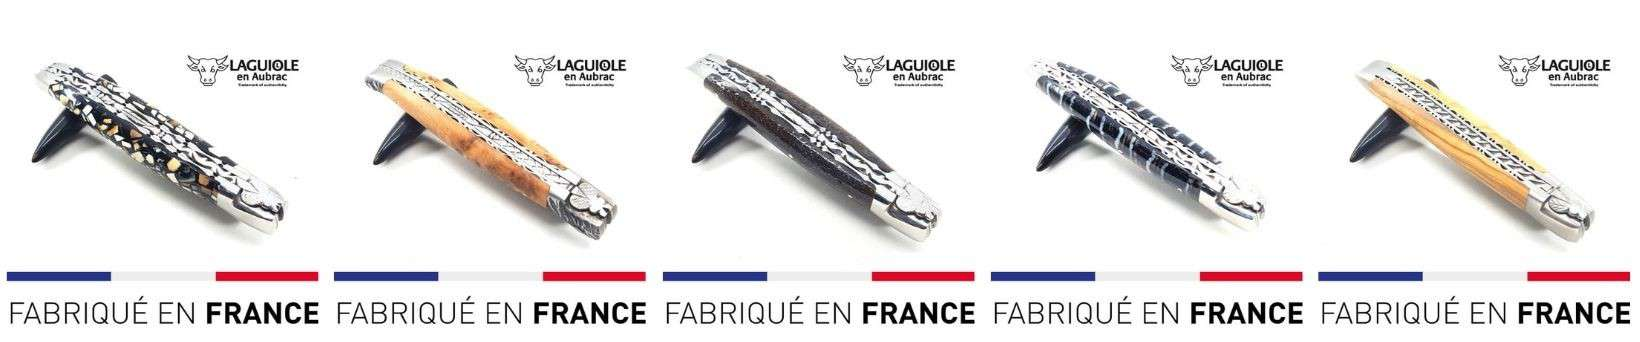 laguiole double platines ciselees edition collection